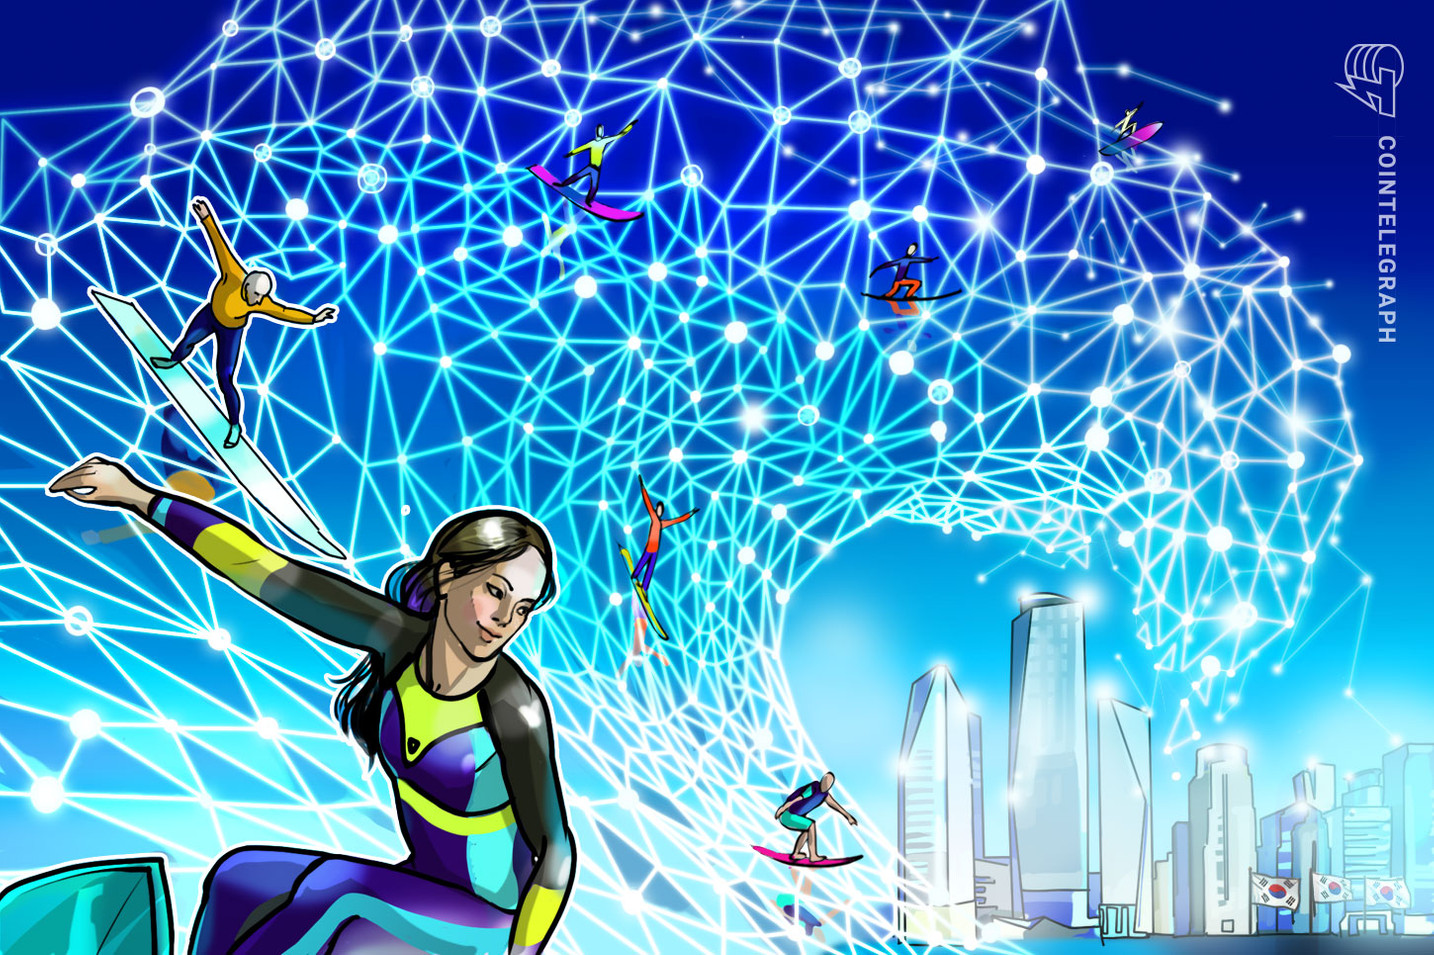 Seoul City Gov't Launches 'Blockchain Governance Team' for State Services